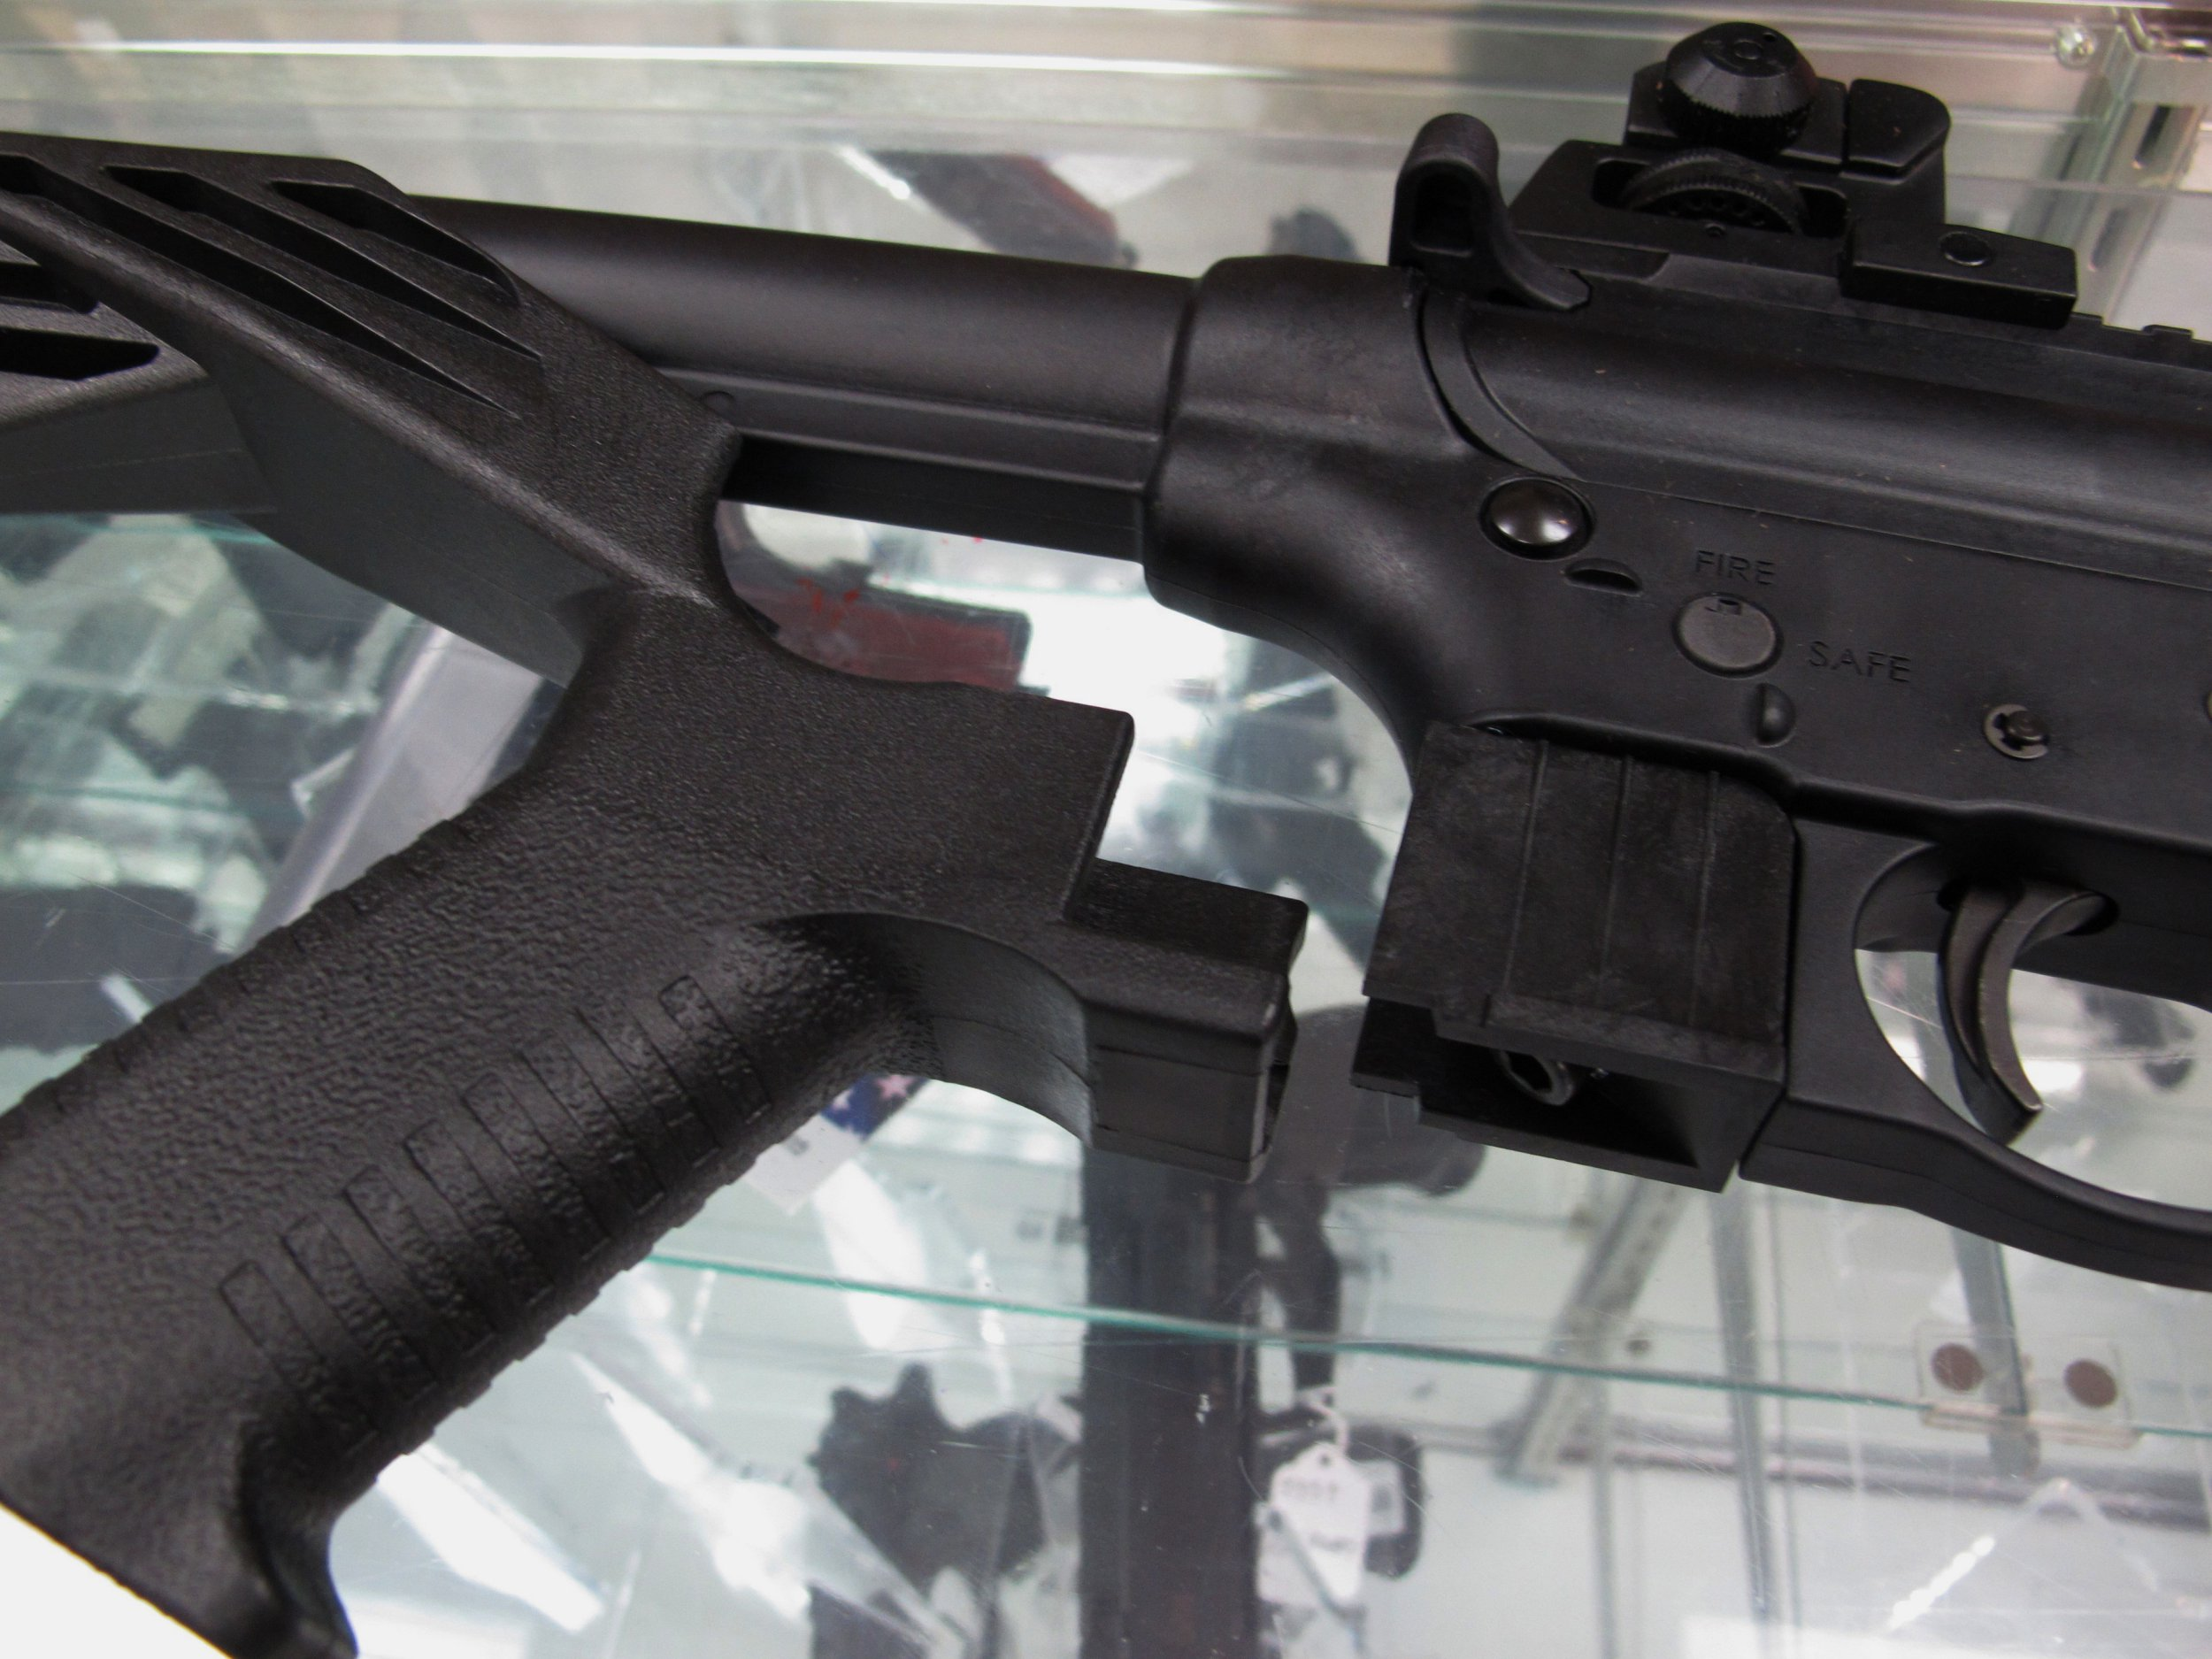 What are bump stocks and why were they used in the Las Vegas shootings?